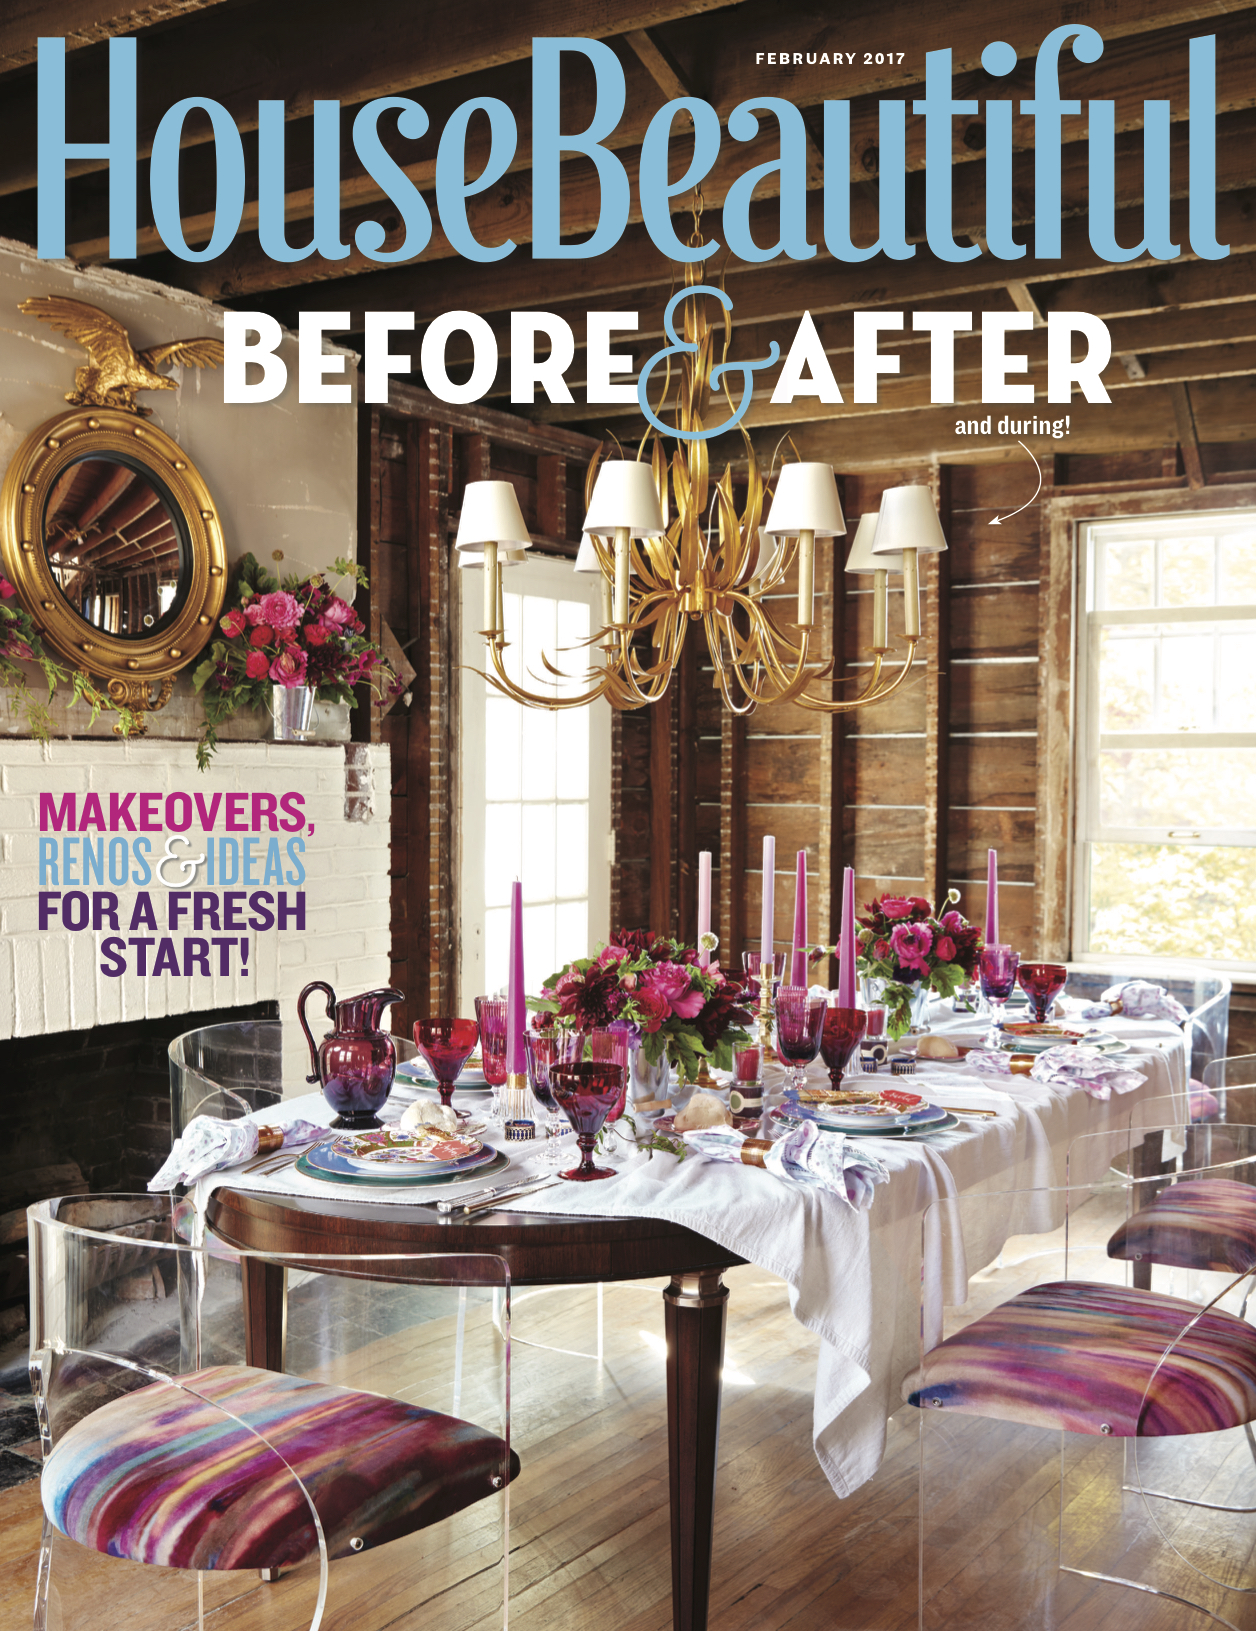 House Beautiful, Cover - Project Manager and Assistant Stylist to lead designer, Eddie Ross